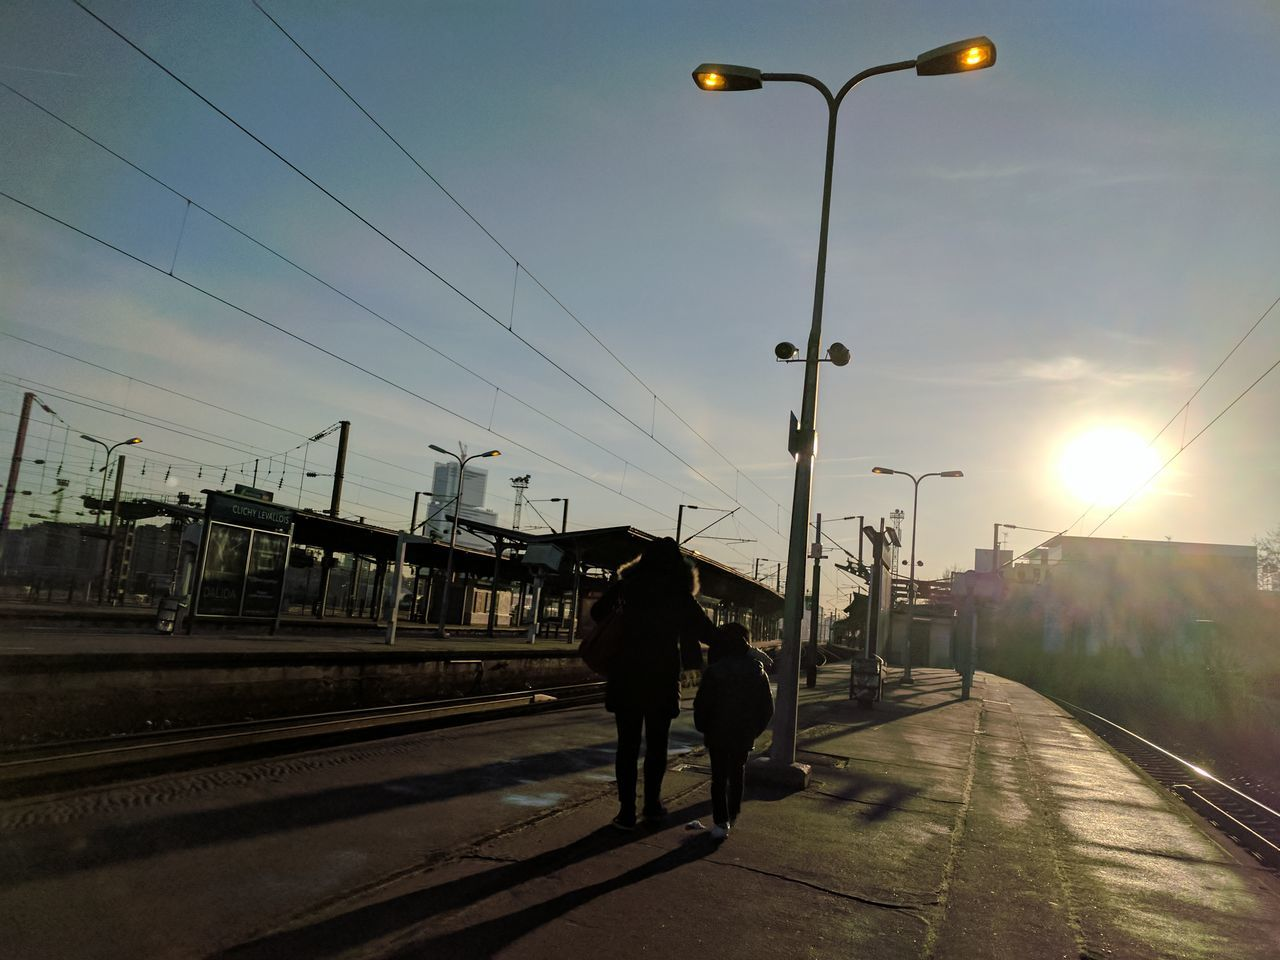 Yet another morning 52WeekChallenge Week1 2 People Train Station Work Day Sun Sunlight Sunlight And Shadow Sunny Day Children Kid Mother Sky Blue Sky France 52weeksplan 52 Weeks 52frames 52